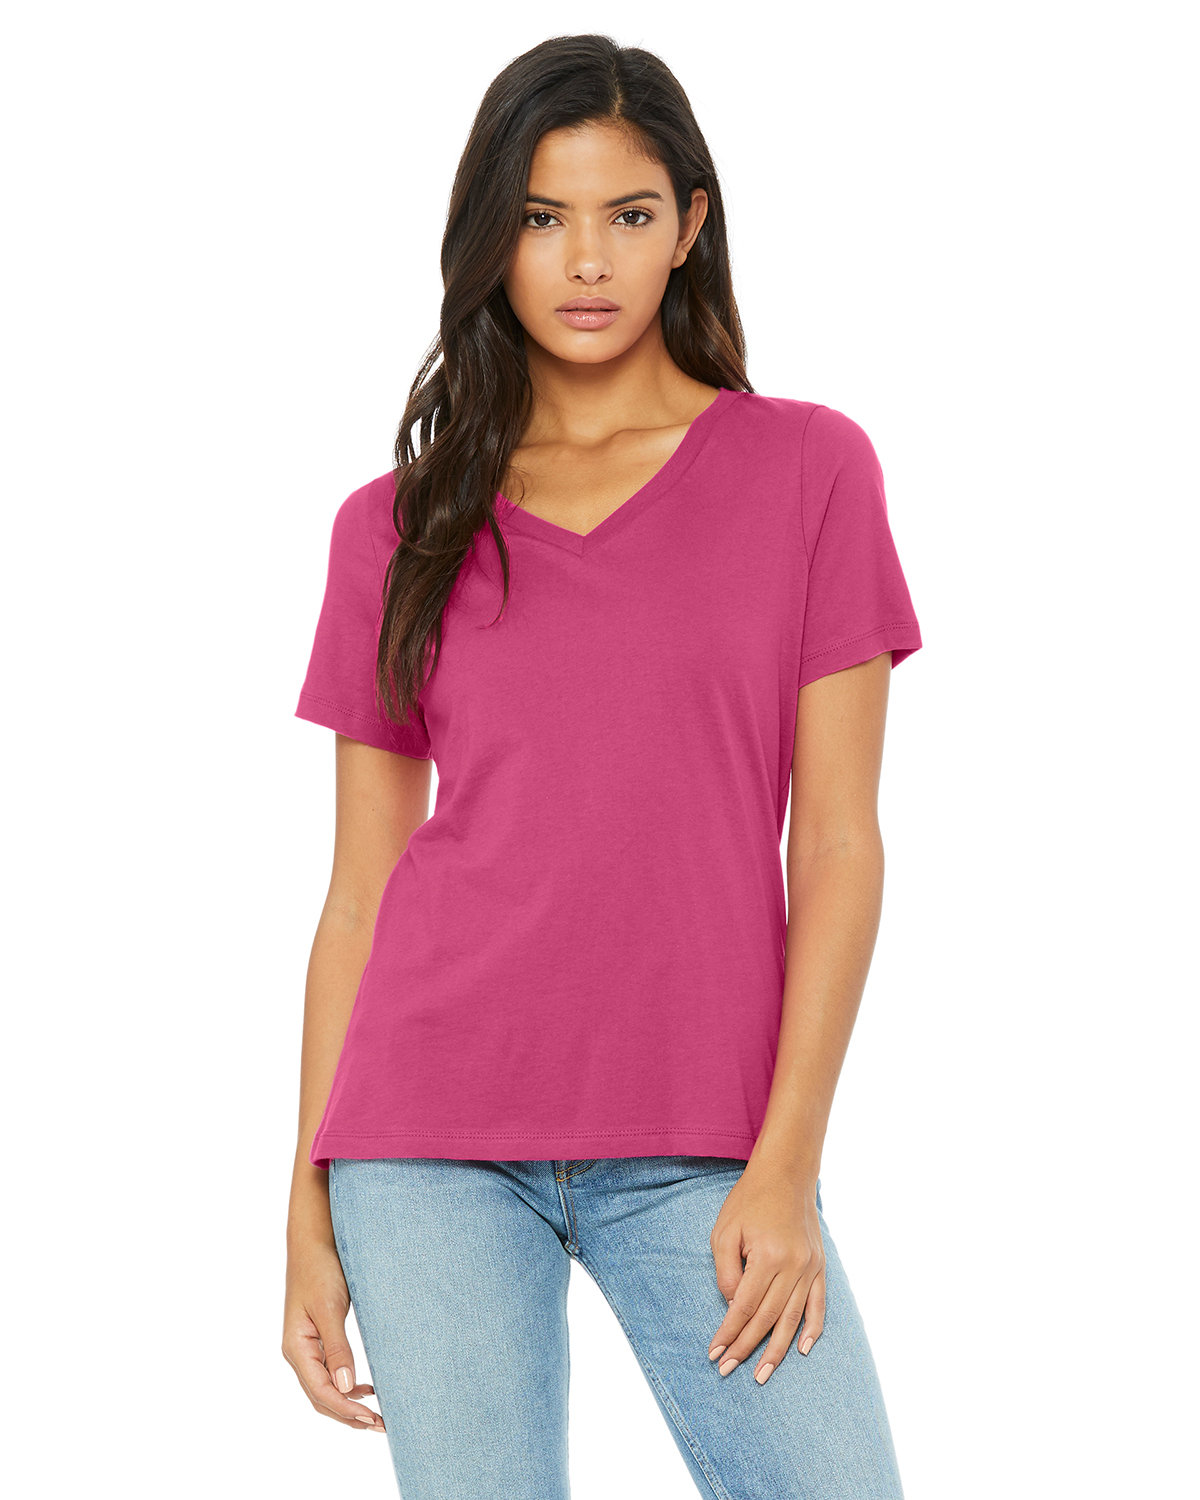 Bella + Canvas Ladies' Relaxed Jersey V-Neck T-Shirt BERRY